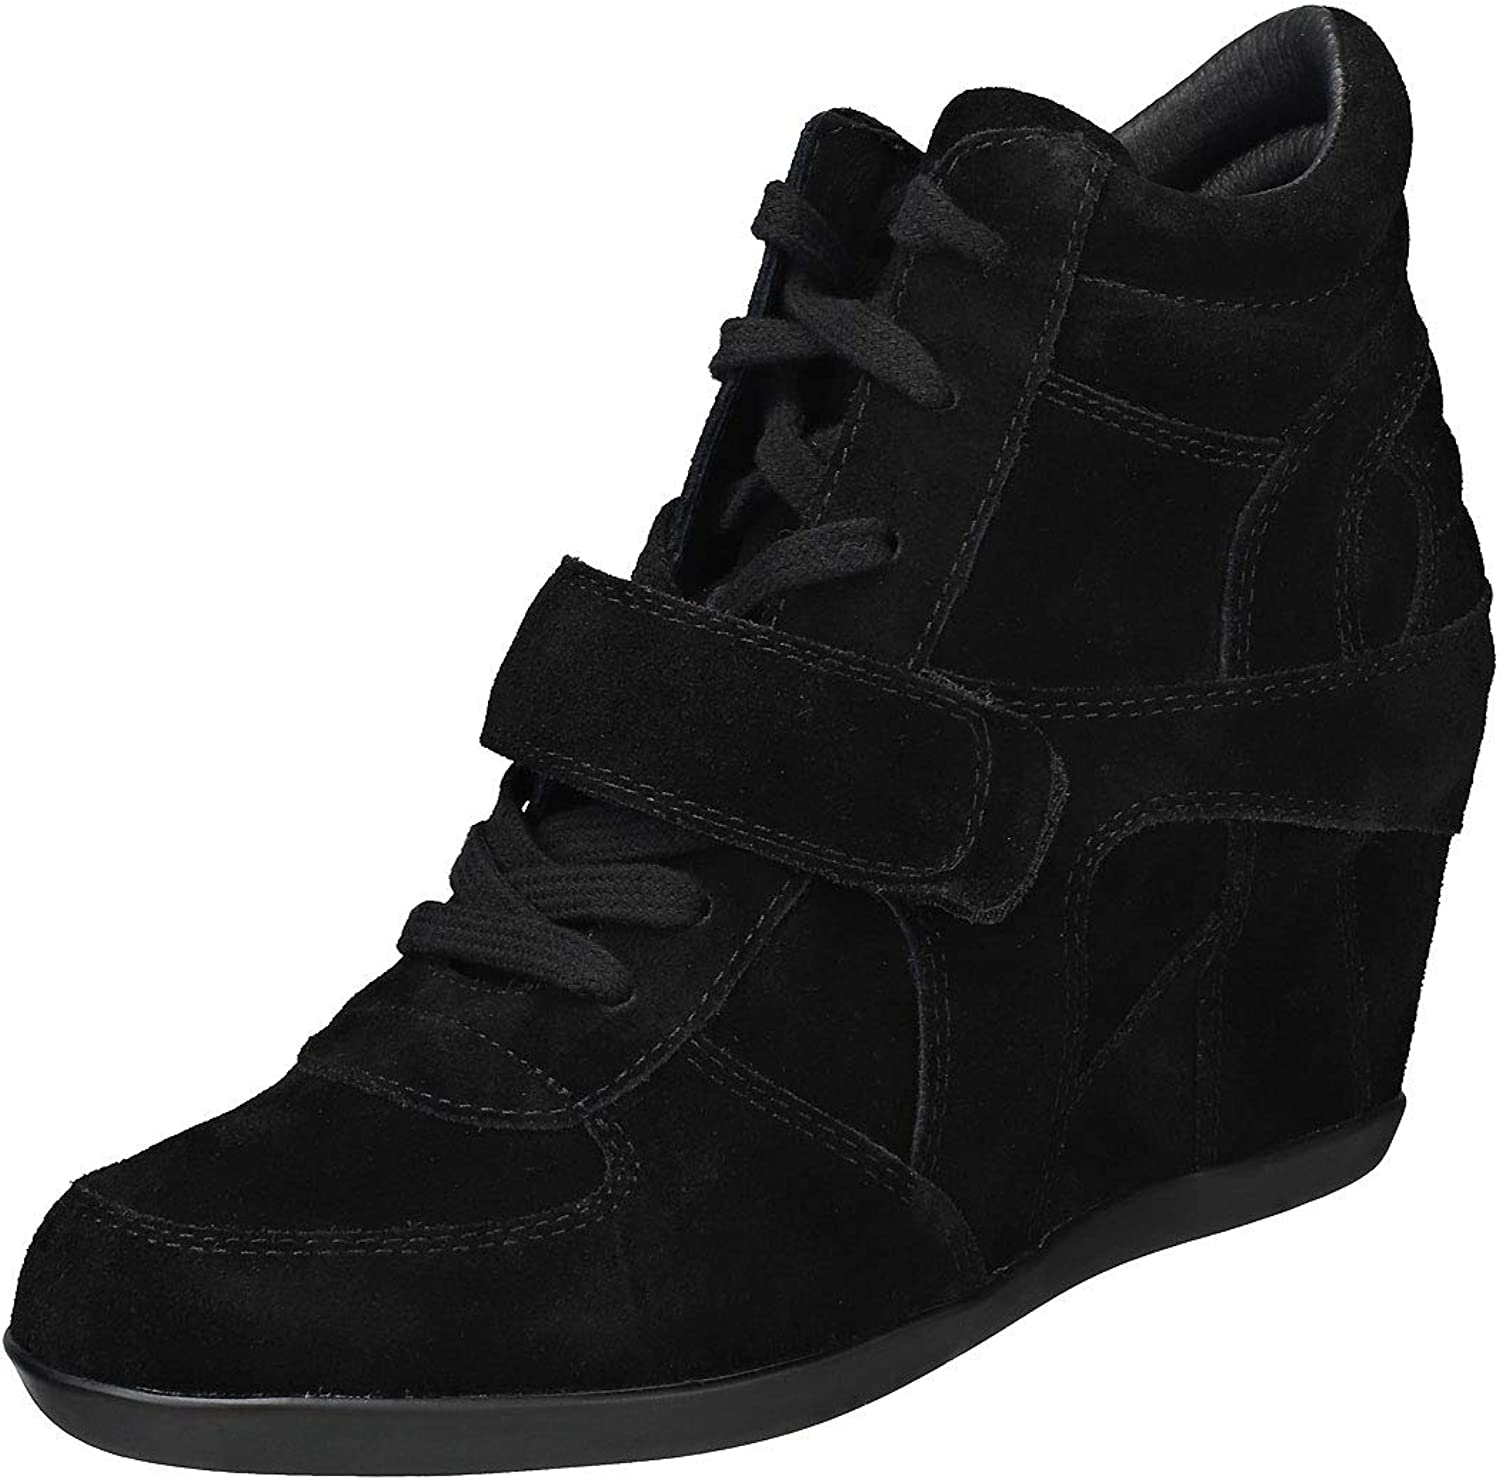 Ash Footwear Bowie nero Suede Wedge Trainer 37EU 4UK nero